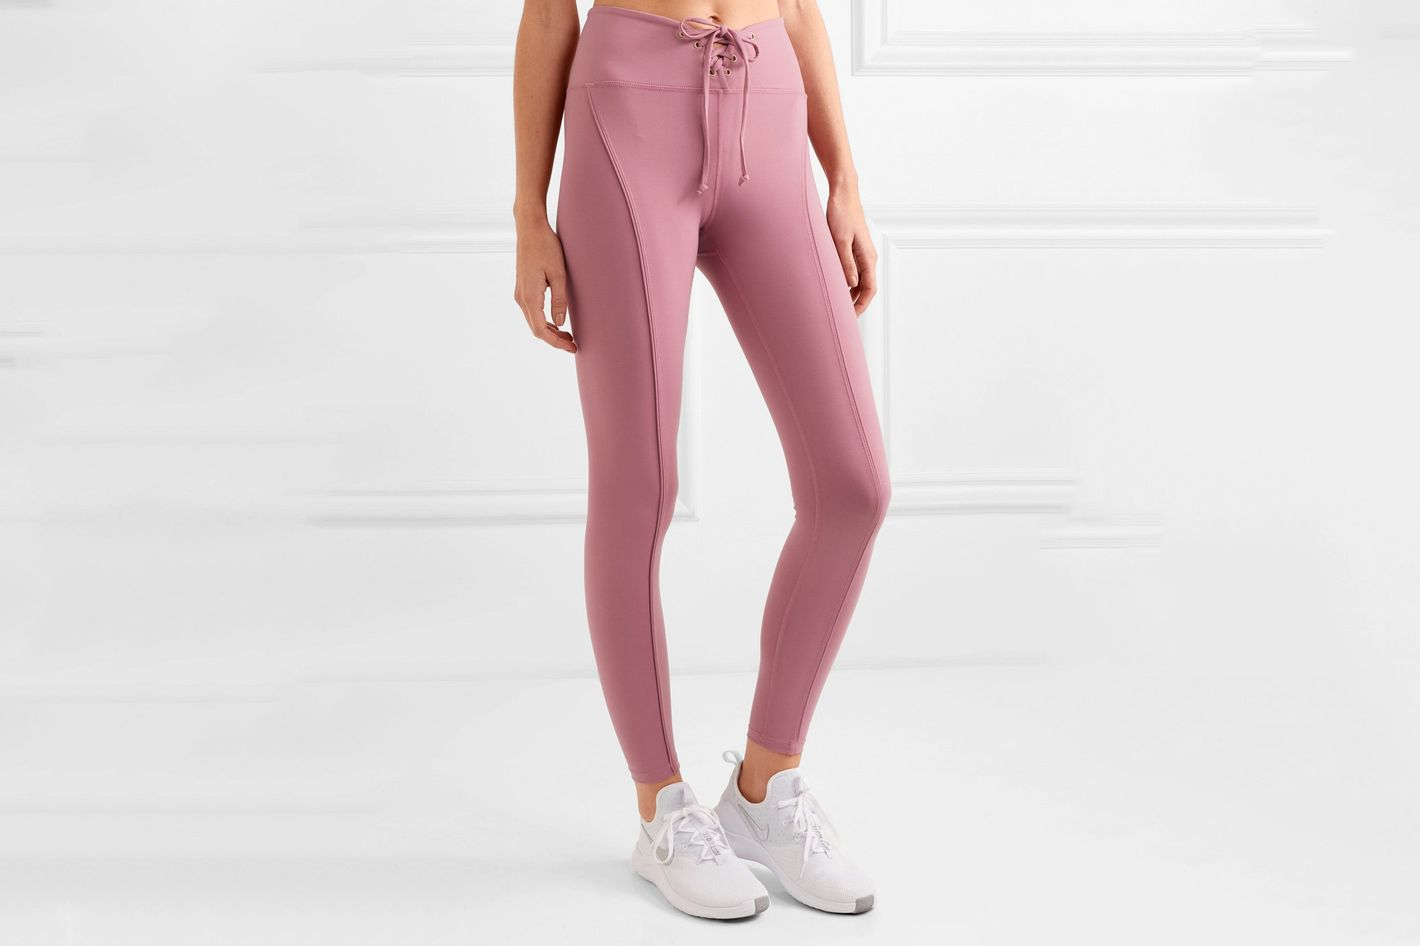 842a84c501f34f The 13 Best Workout Leggings for Running and Yoga 2019